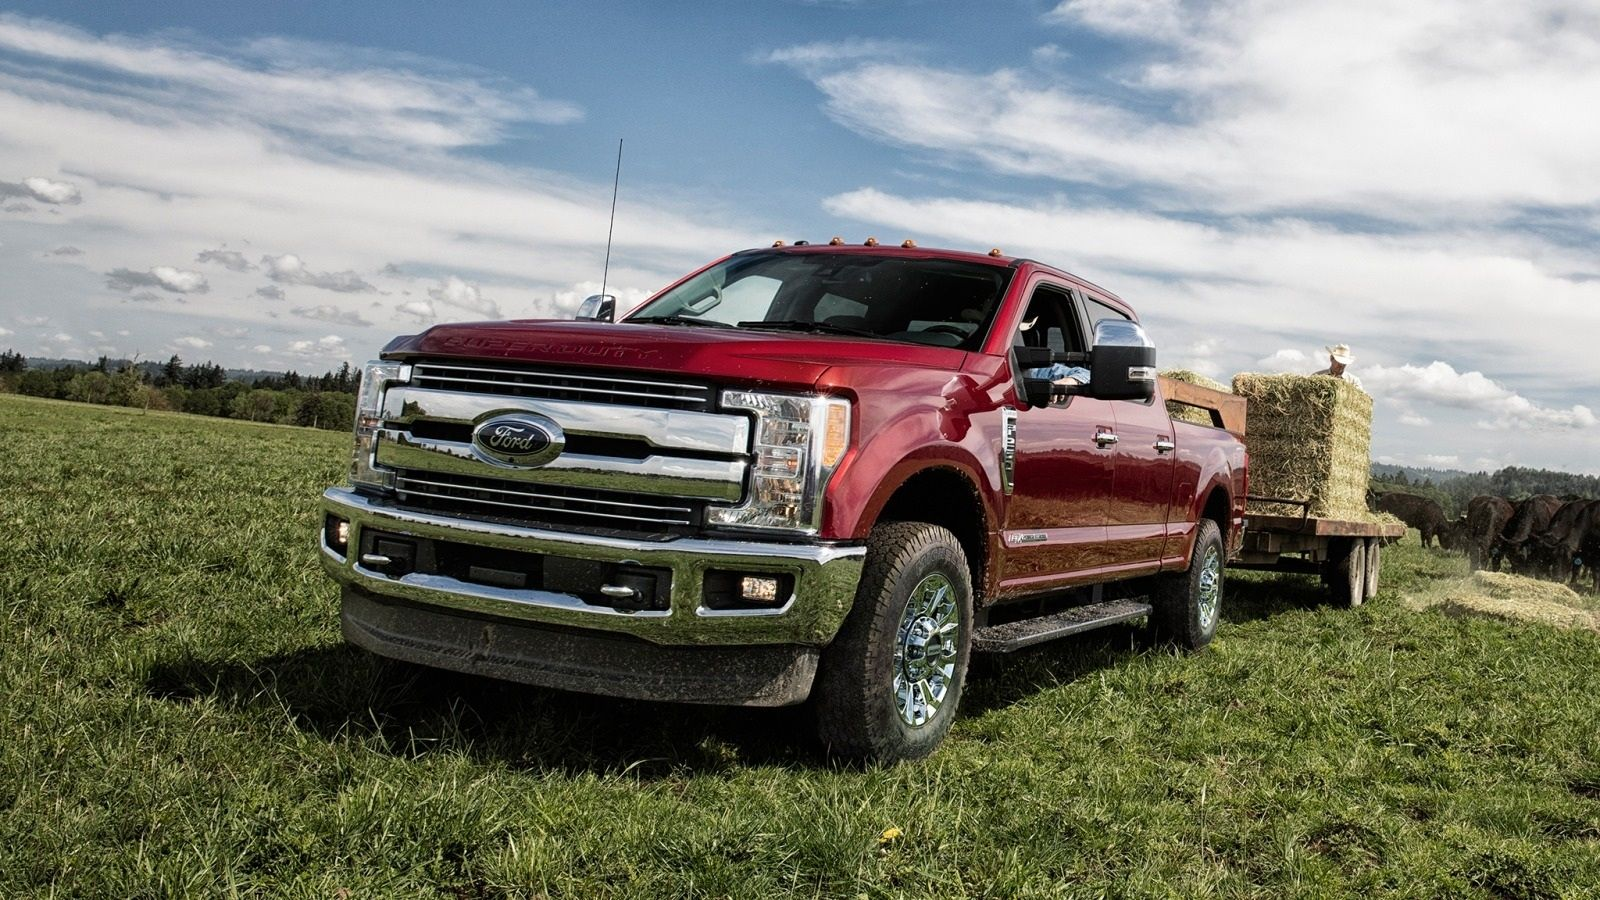 2019 Ford Super Duty Interior Exterior And Review Ford F250